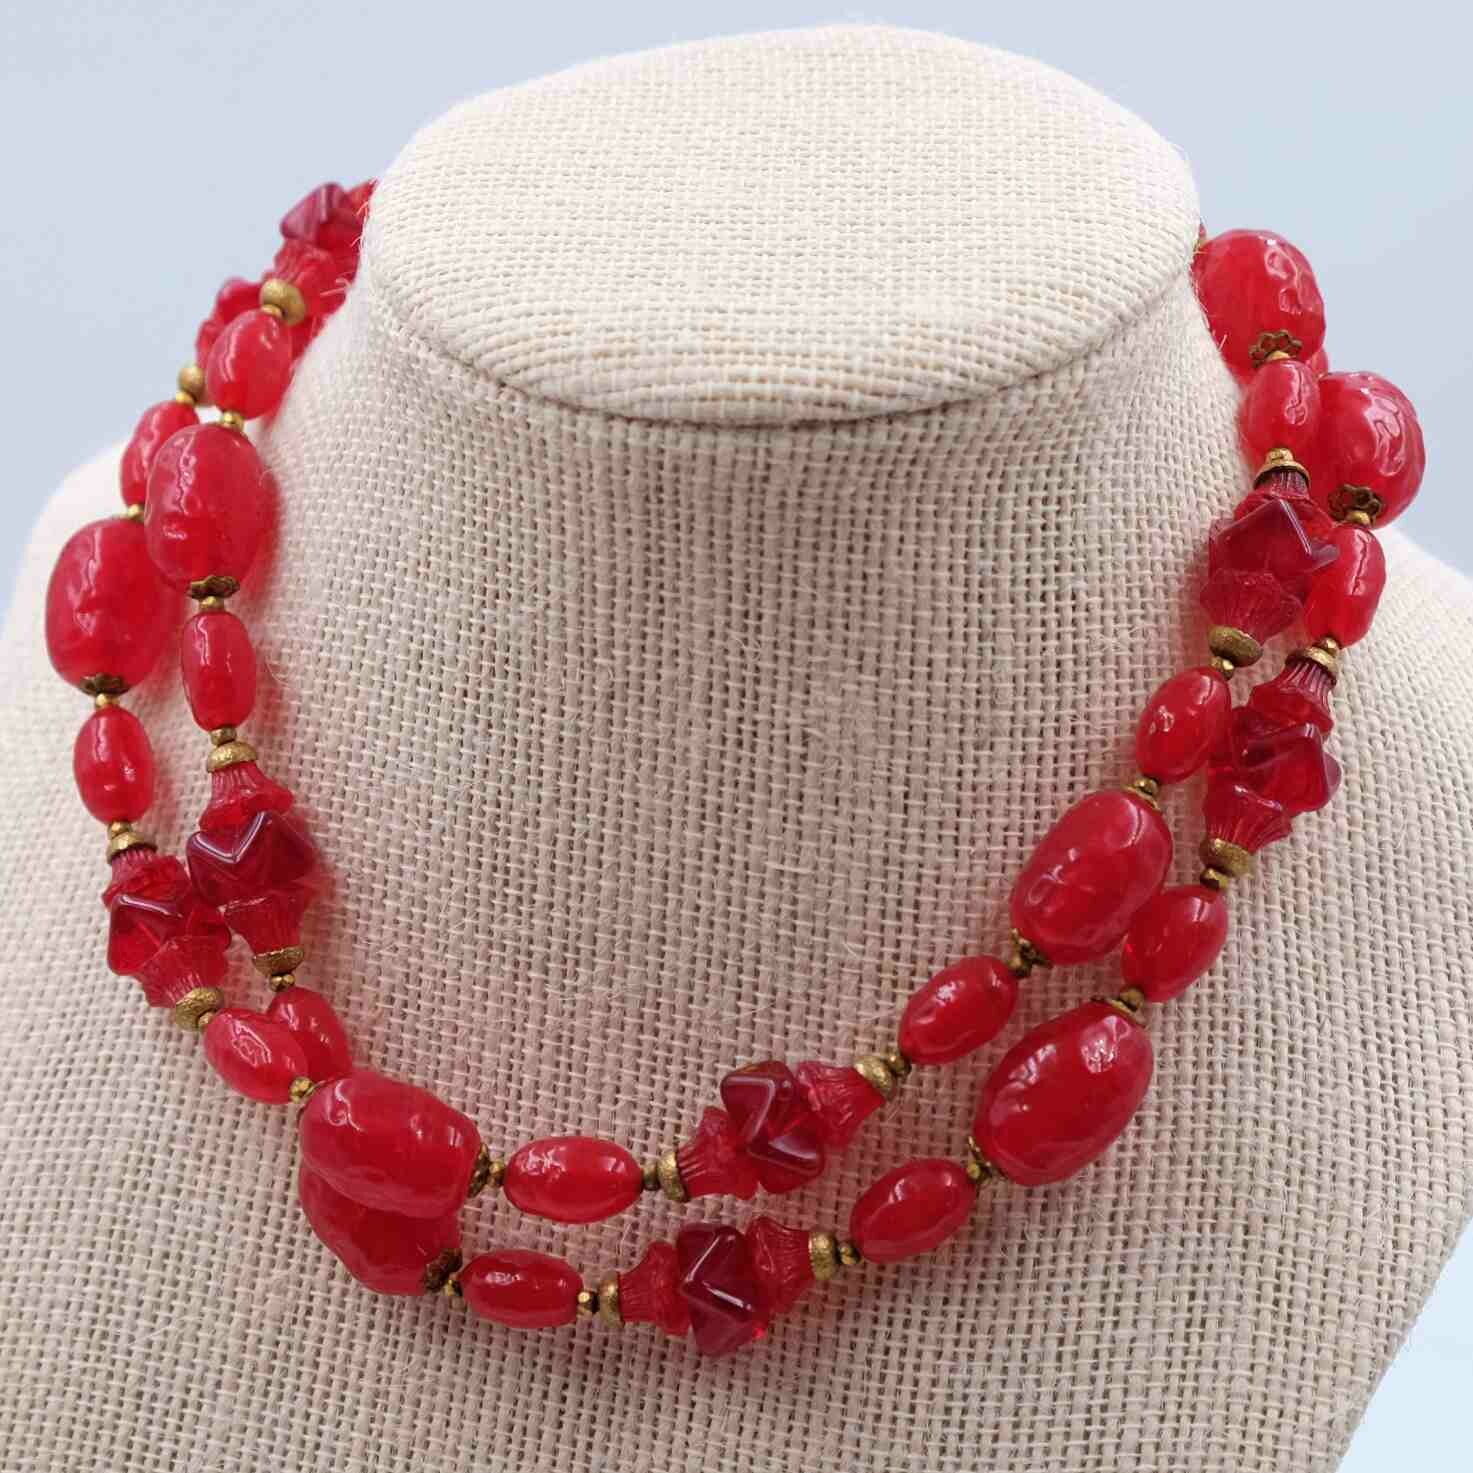 Vintage Miriam Haskell Red Ruby Glass Necklace 1950s